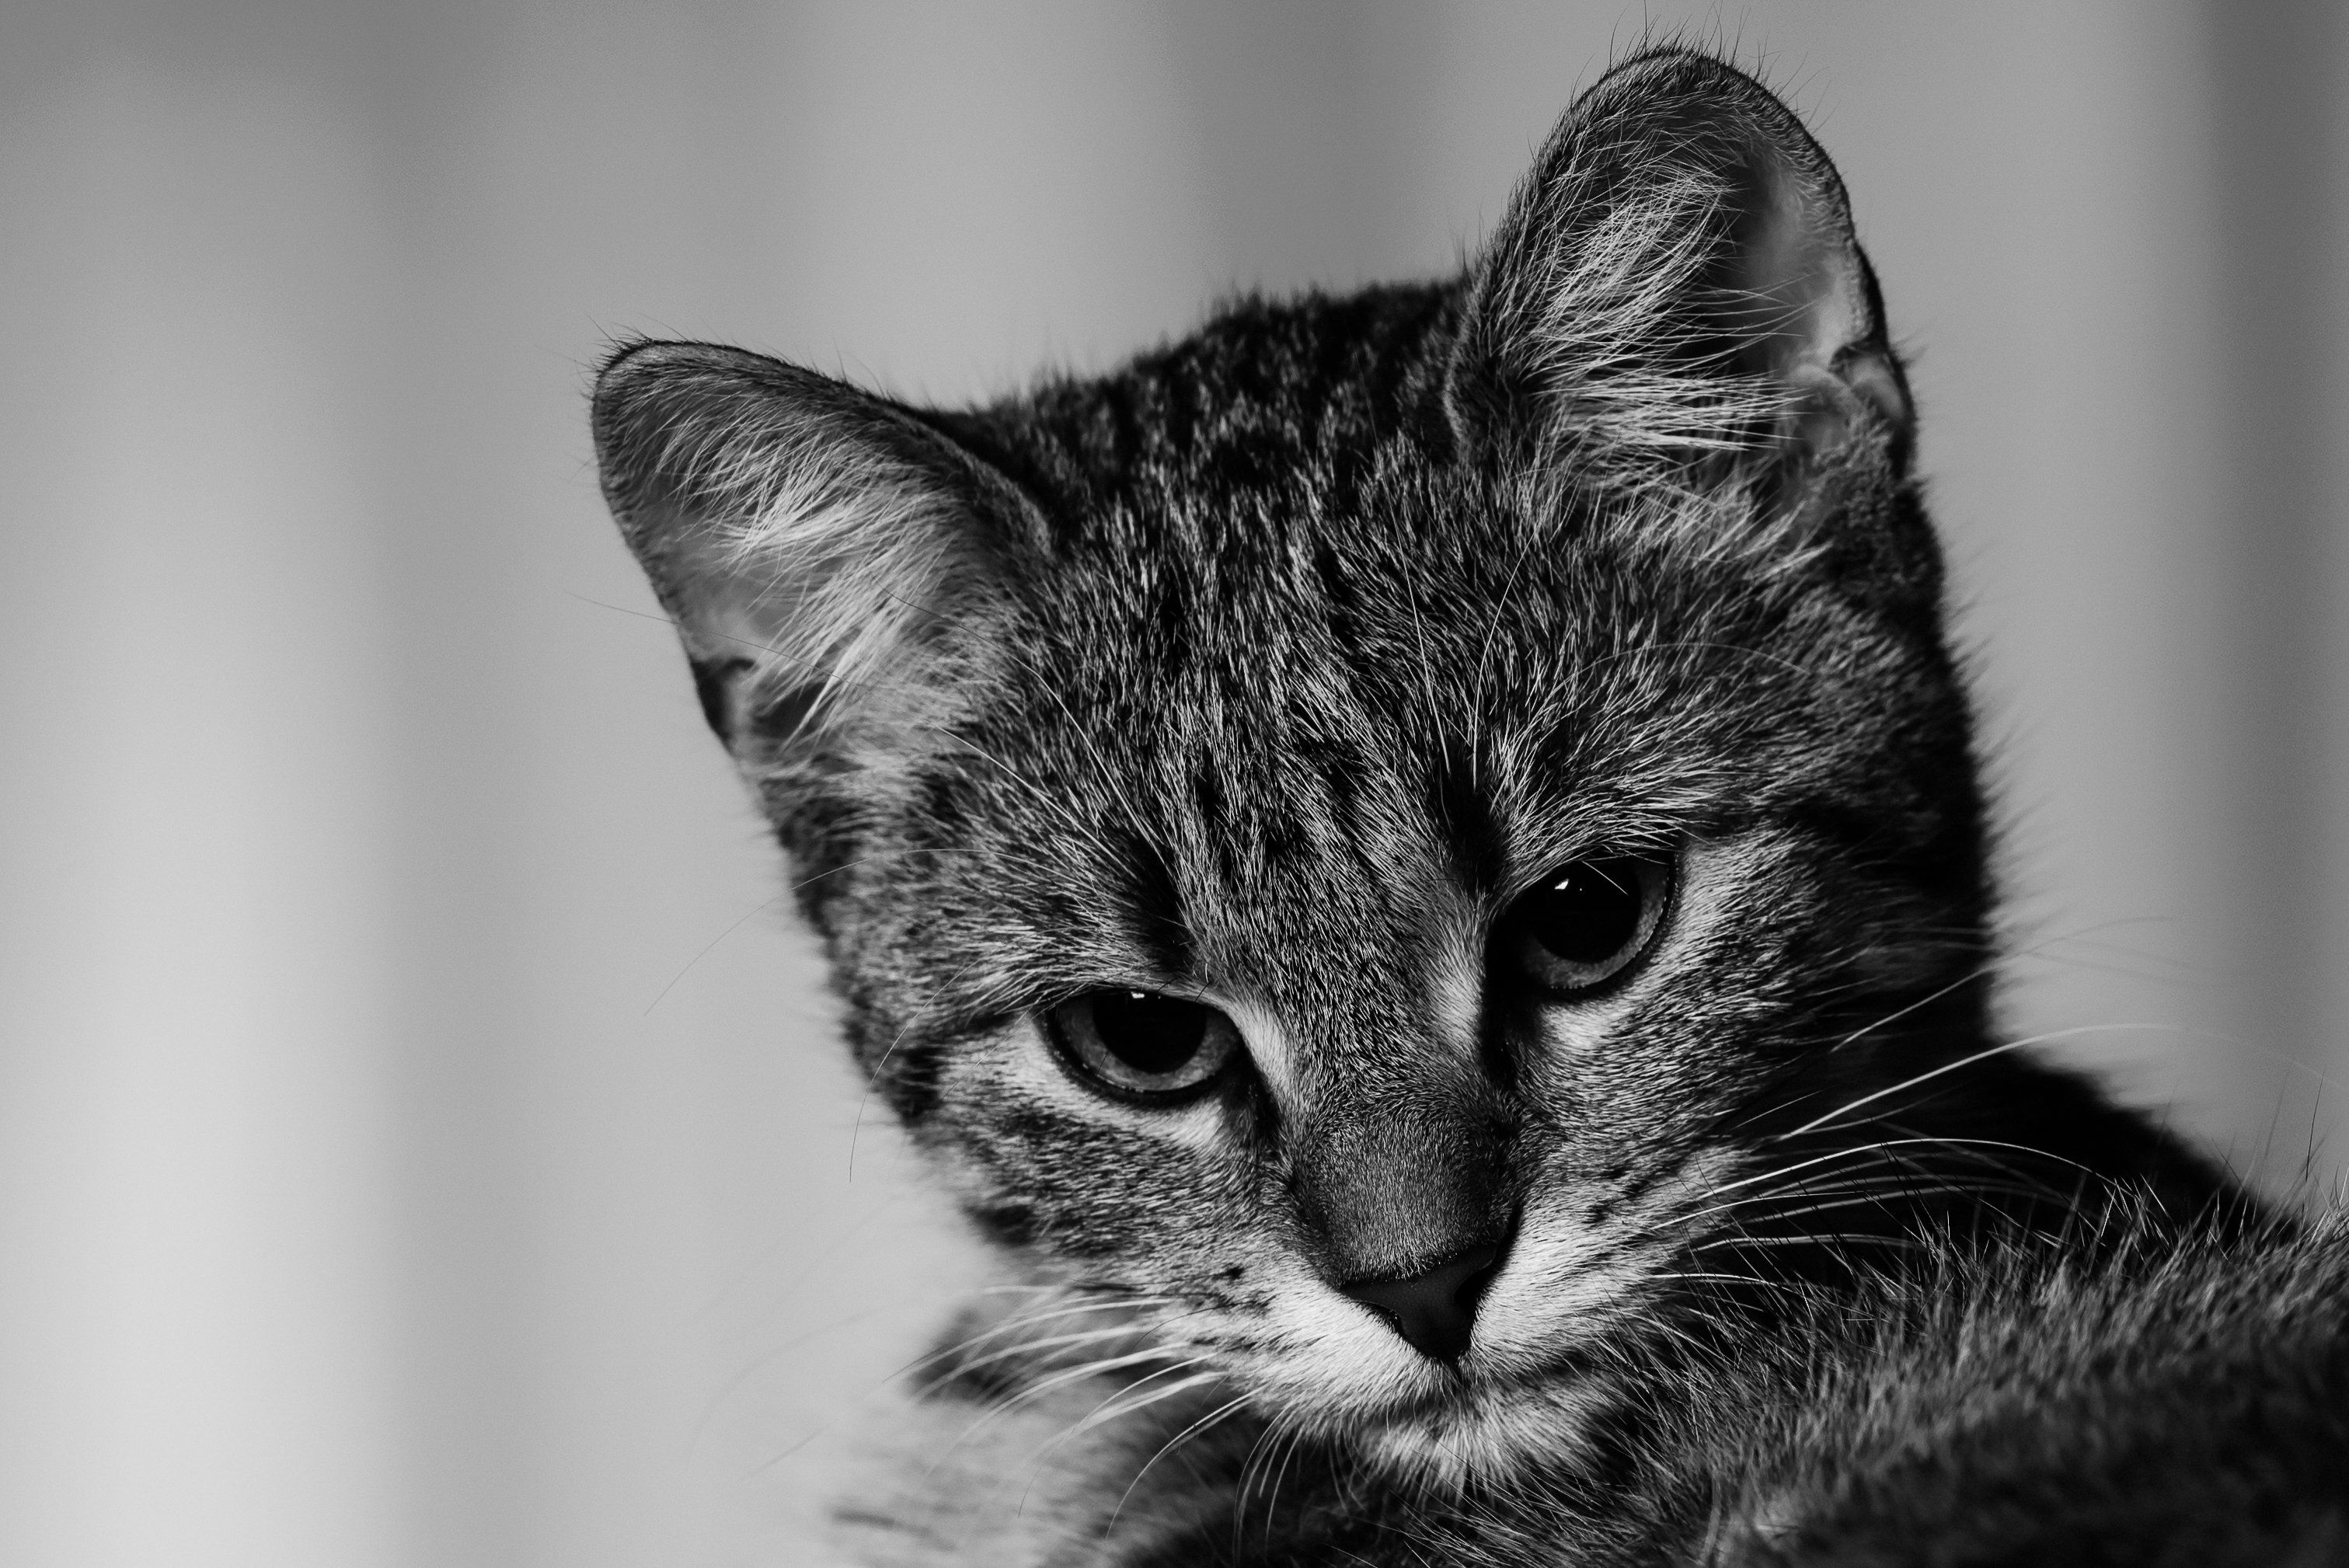 Black and white shot of domestic kitten head